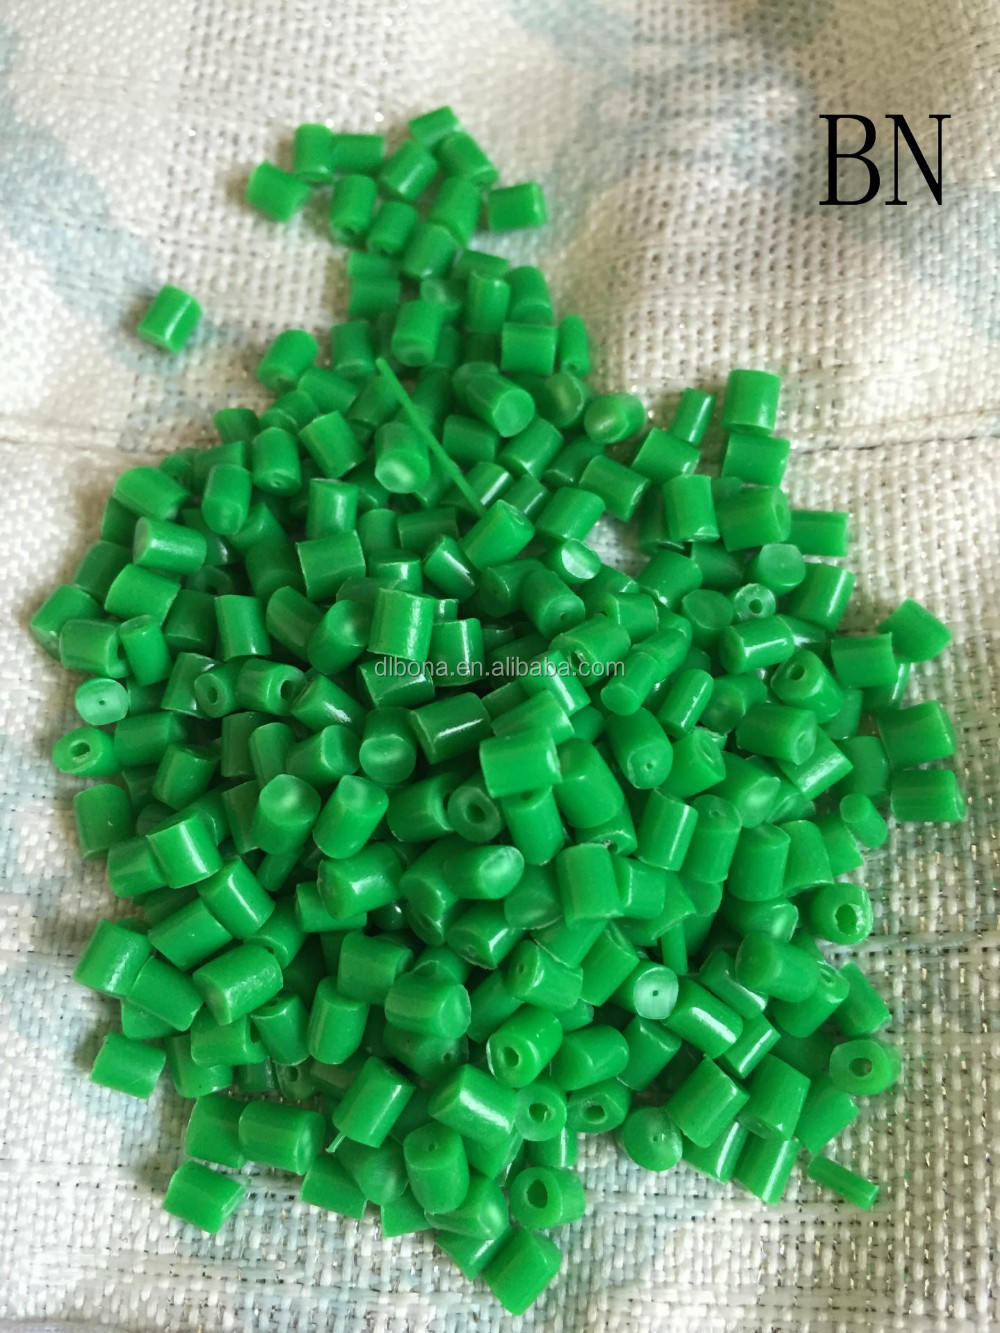 Factory Price Recycled Ldpe Hdpe Lldpe Pp Plastic Granule